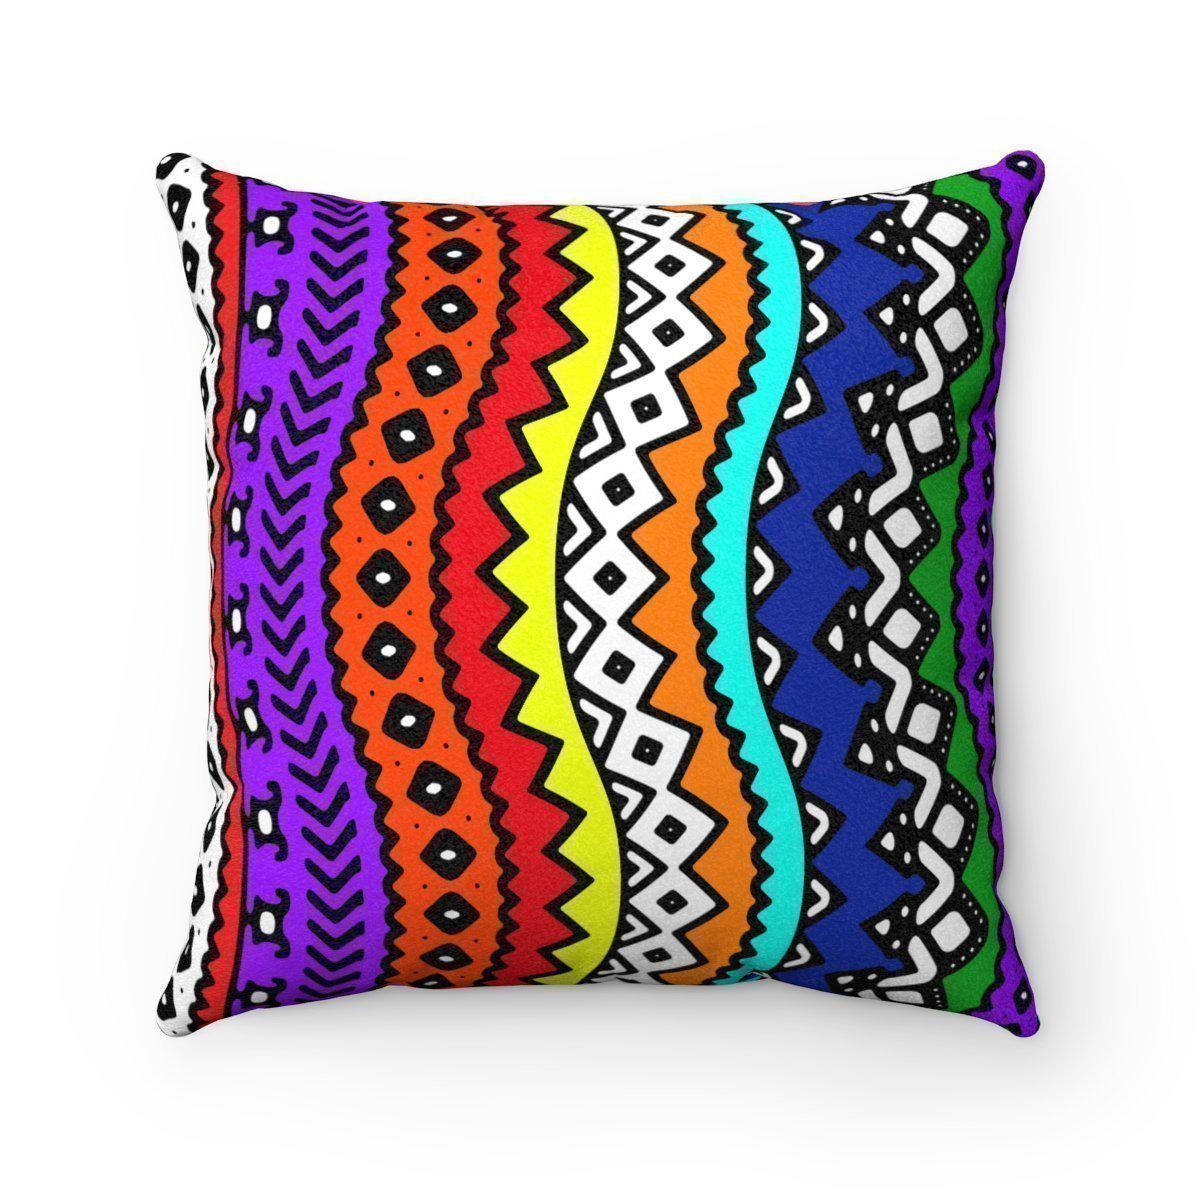 Faux suede tribal decorative pillow w/insert-Home Decor - Decorative Accents - Pillows & Throws - Decorative Pillows-Maison d'Elite-16x16-Très Elite